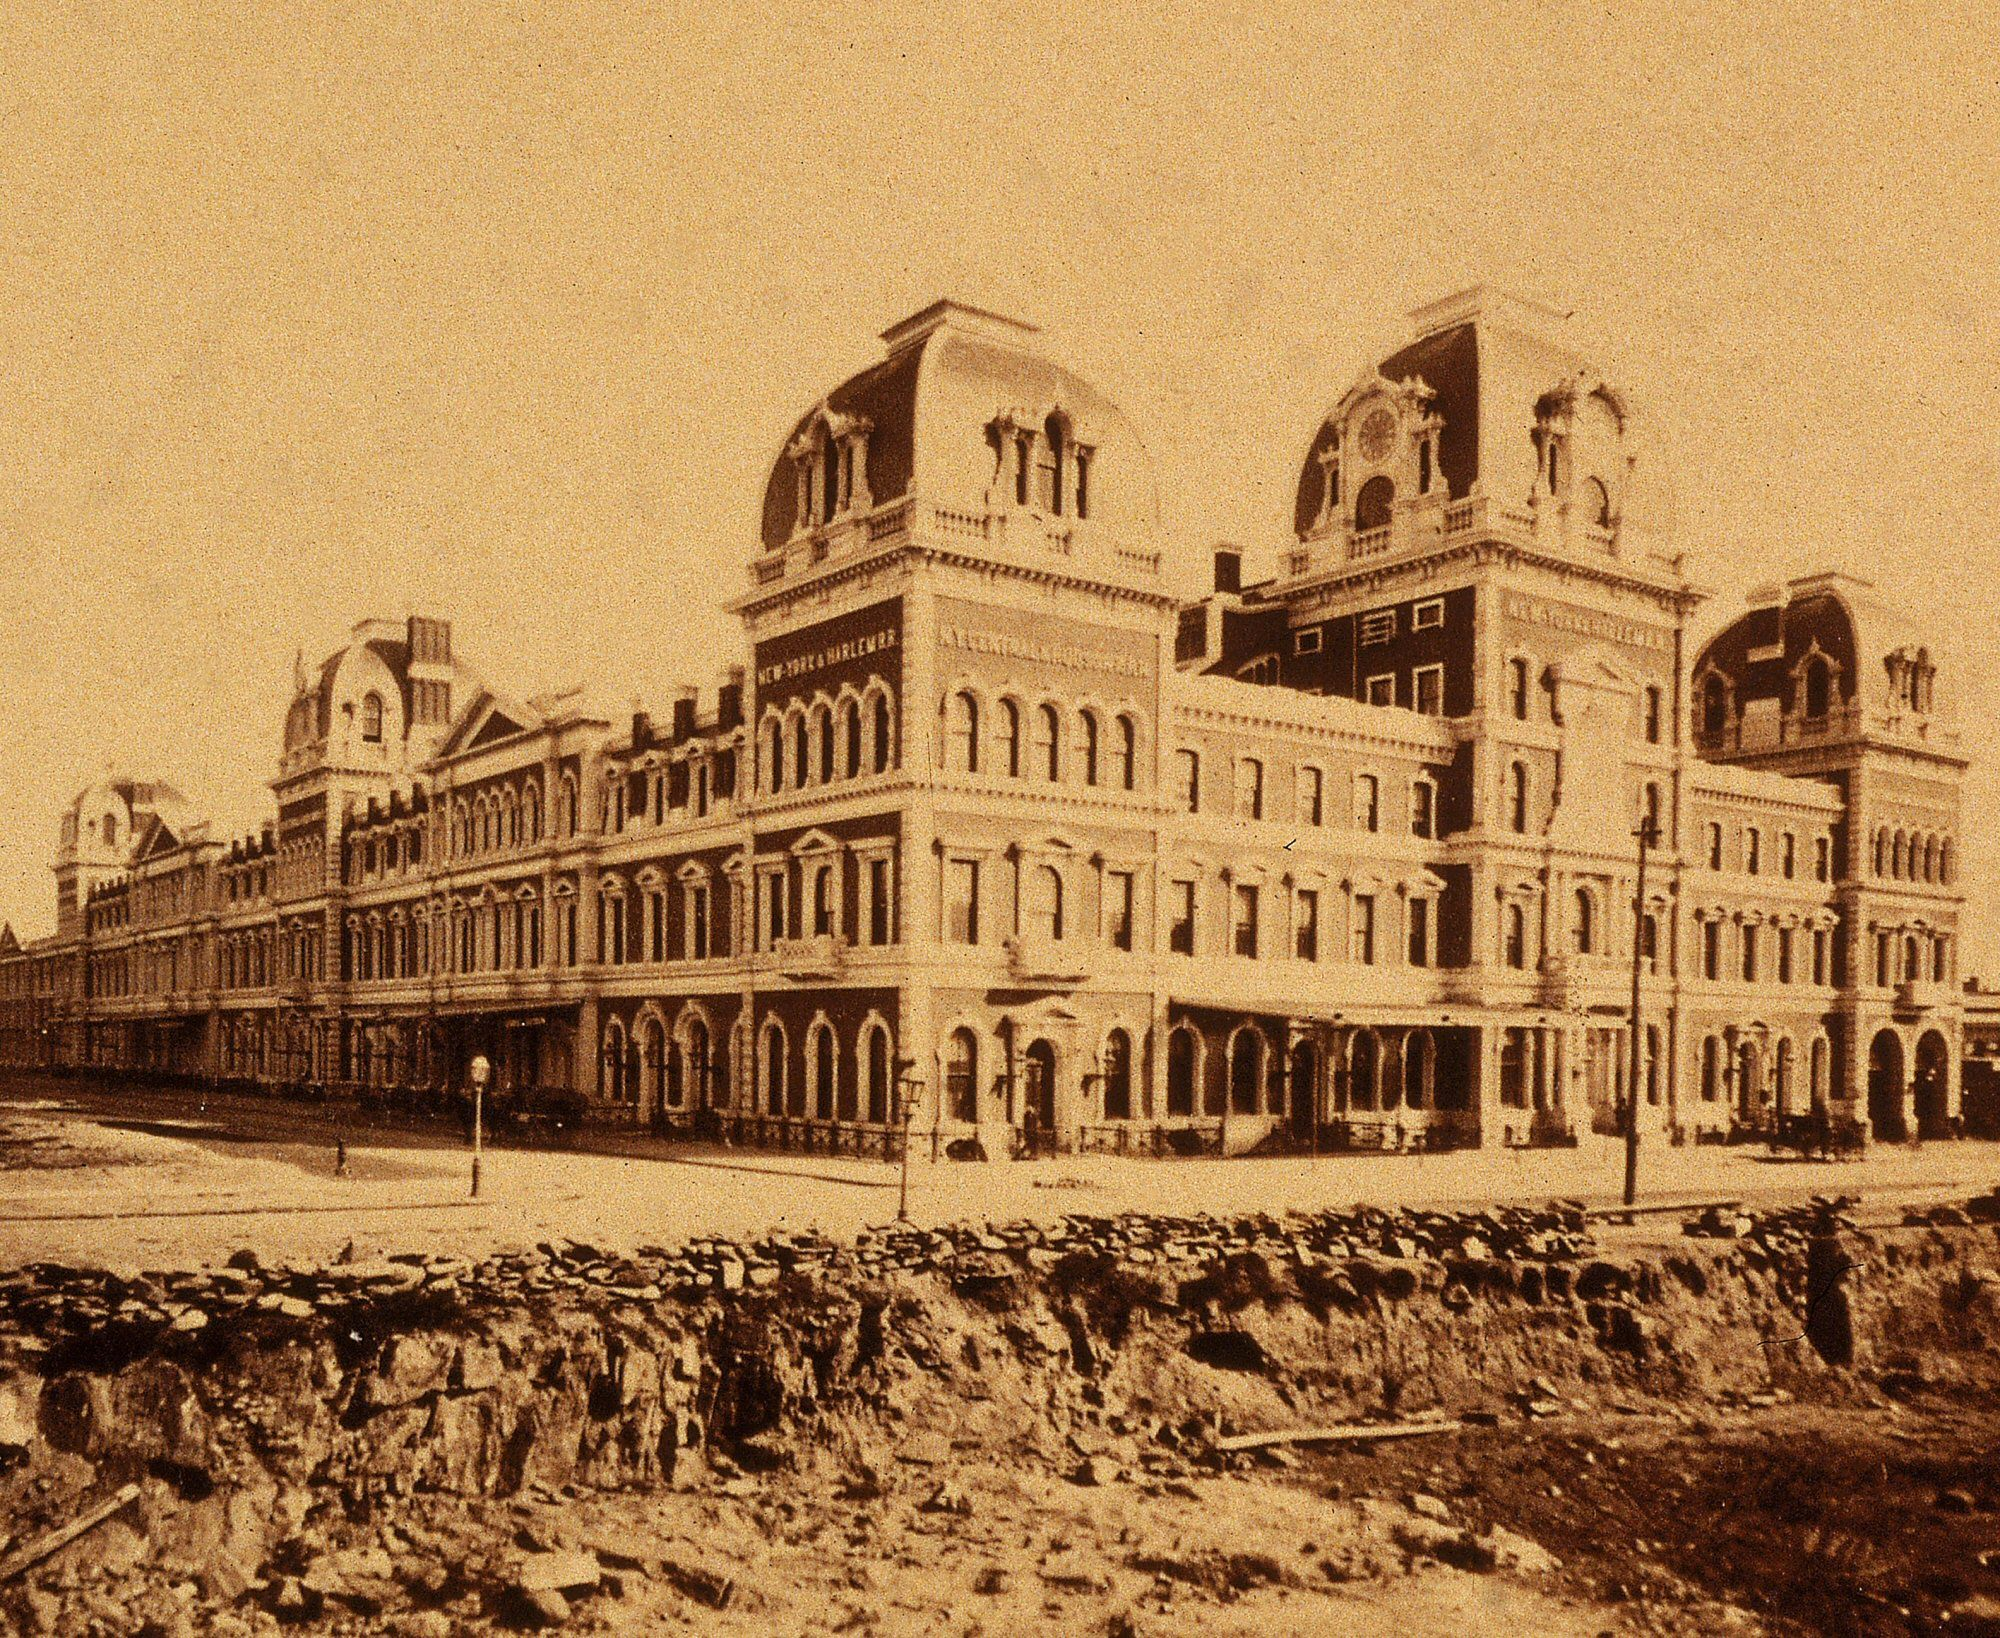 Archival photo of Second Empire style building covering an entire city block.